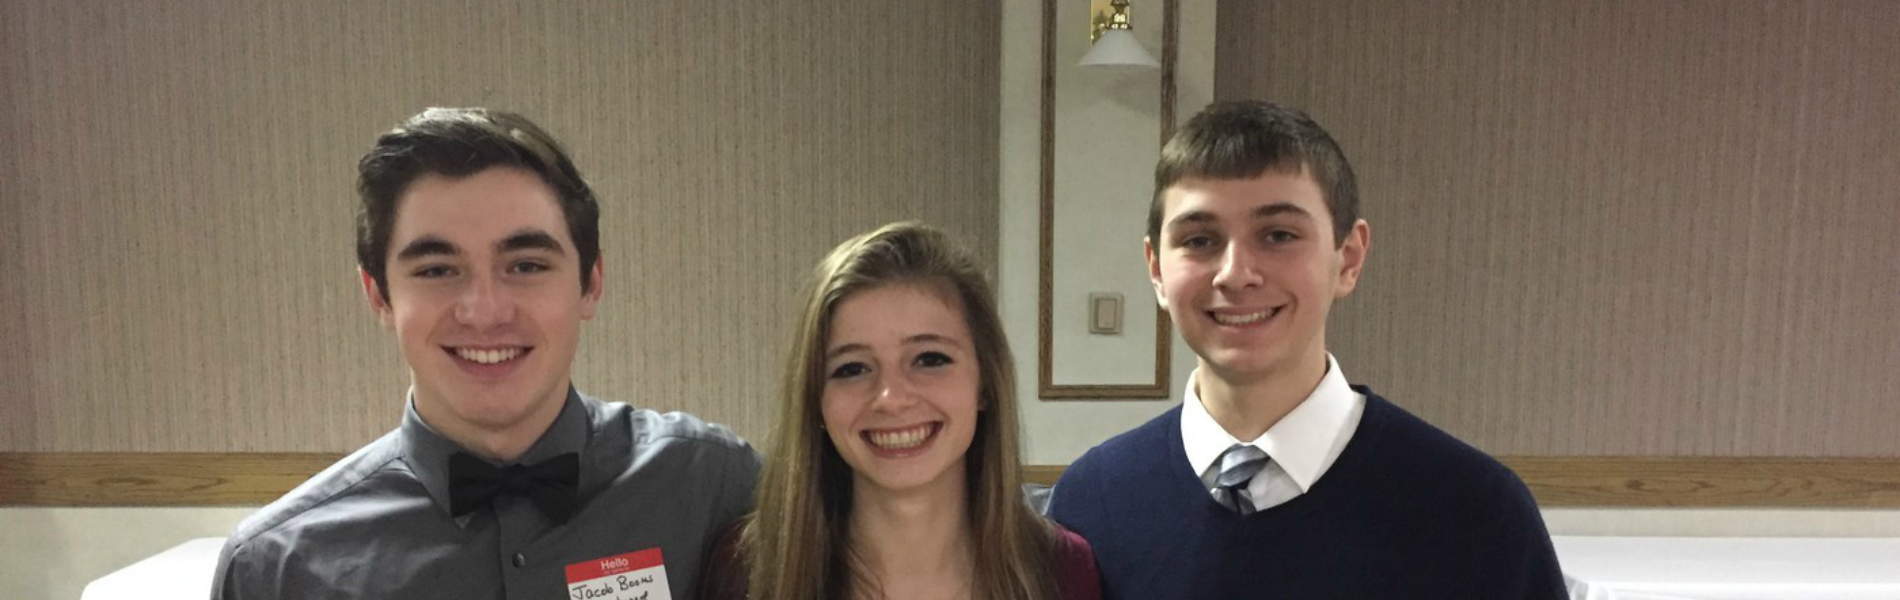 Congratulations to our recent EHS Students of the Month Jacob B., Lauren W., and Alec G.